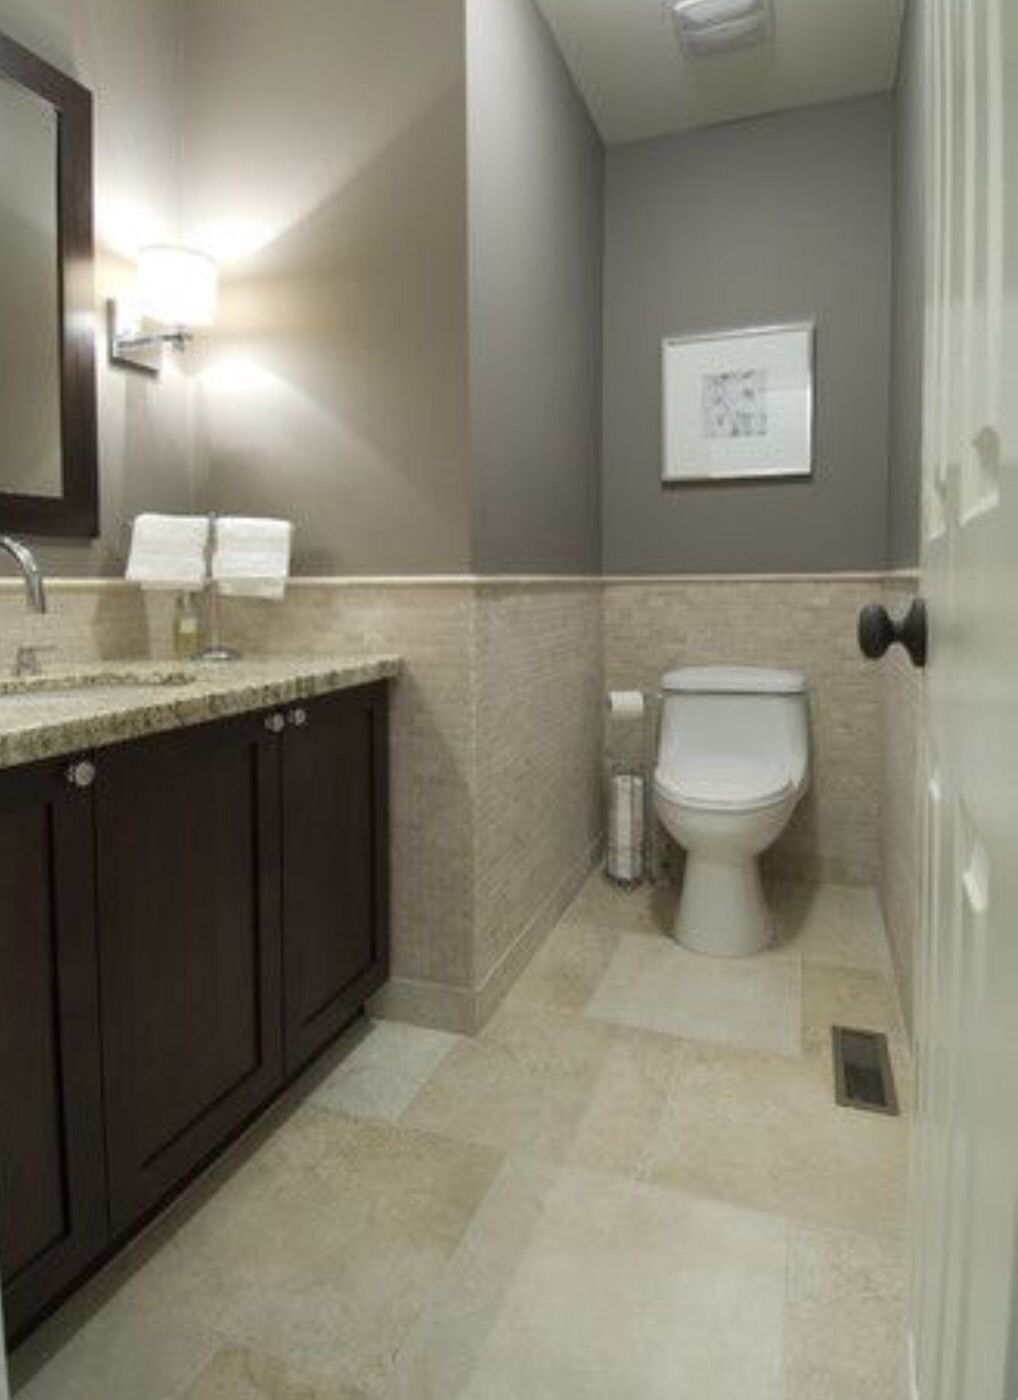 Half Tile Wall Around Toilet A Must Have In Small Spaces